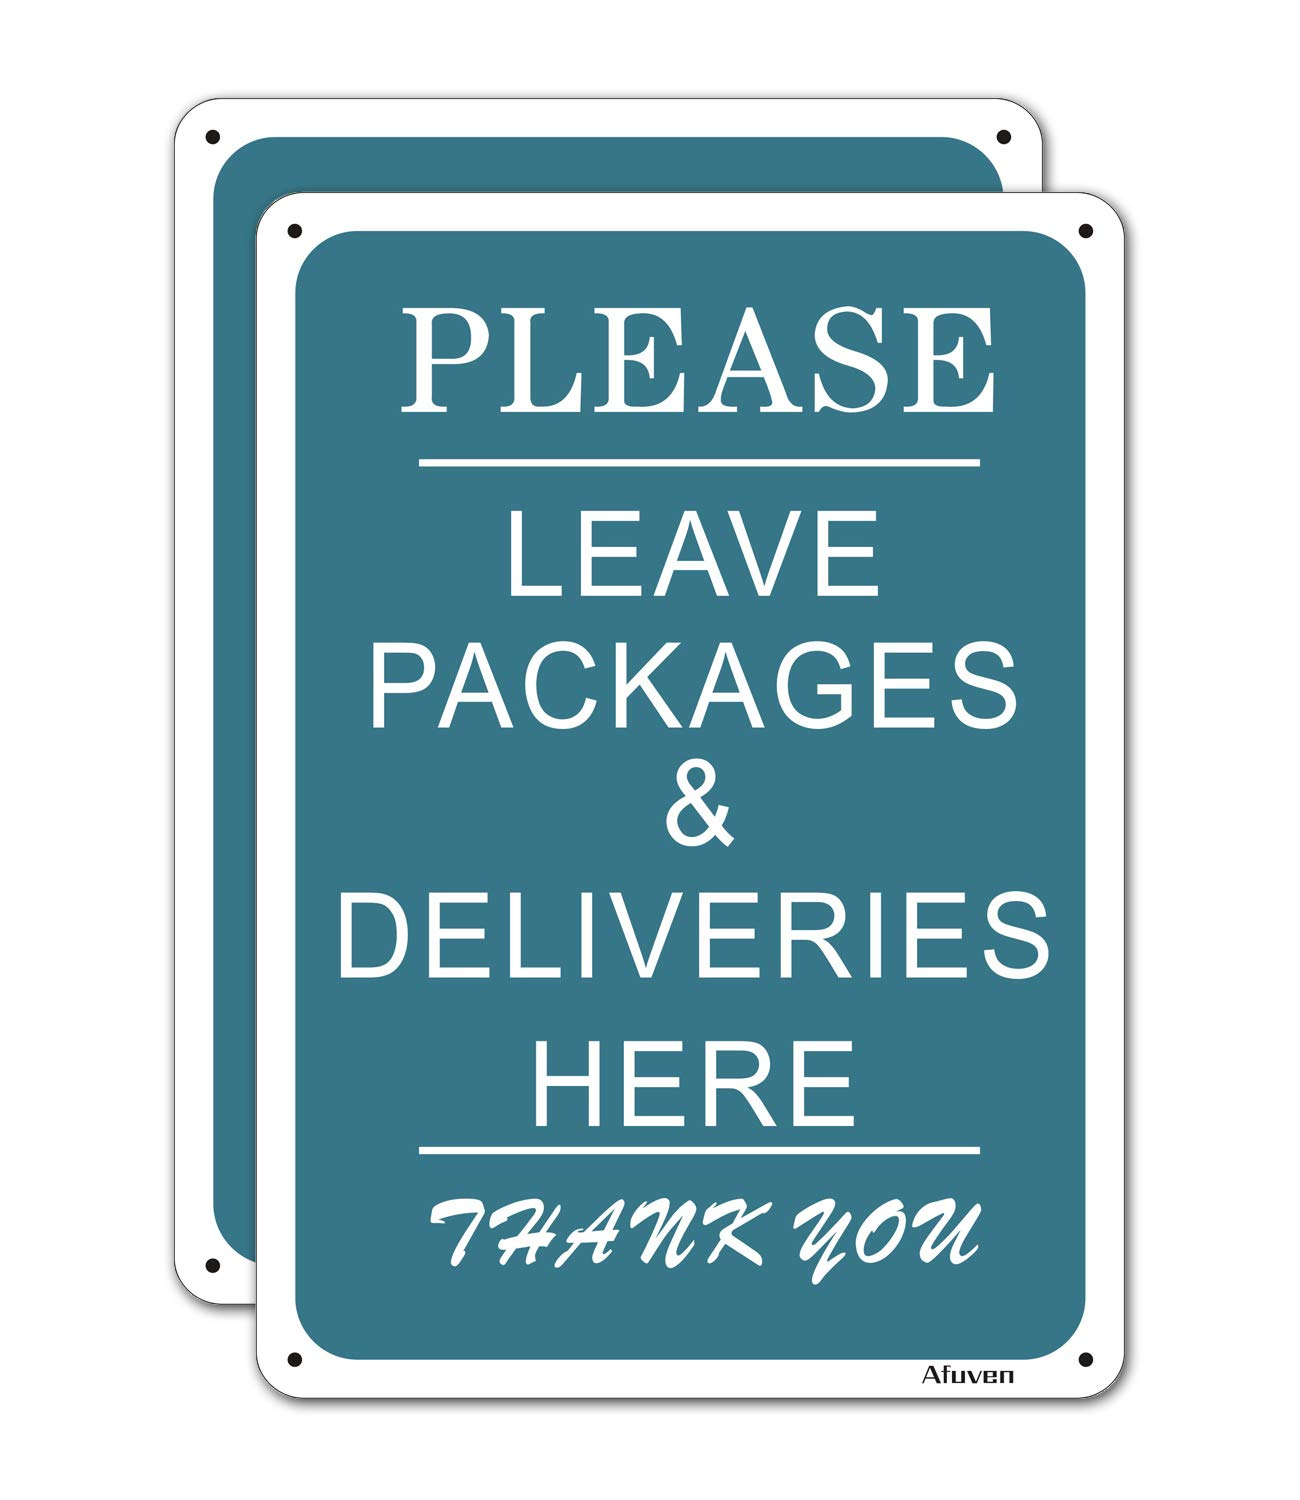 """2 Pack Please Leave Deliveries and Packages Here Signs, Metal Reflective 10"""" x 7"""" Rust Free Aluminum, Easy Mounting Indoor or Outdoor Use, Waterproof and Durable Ink"""